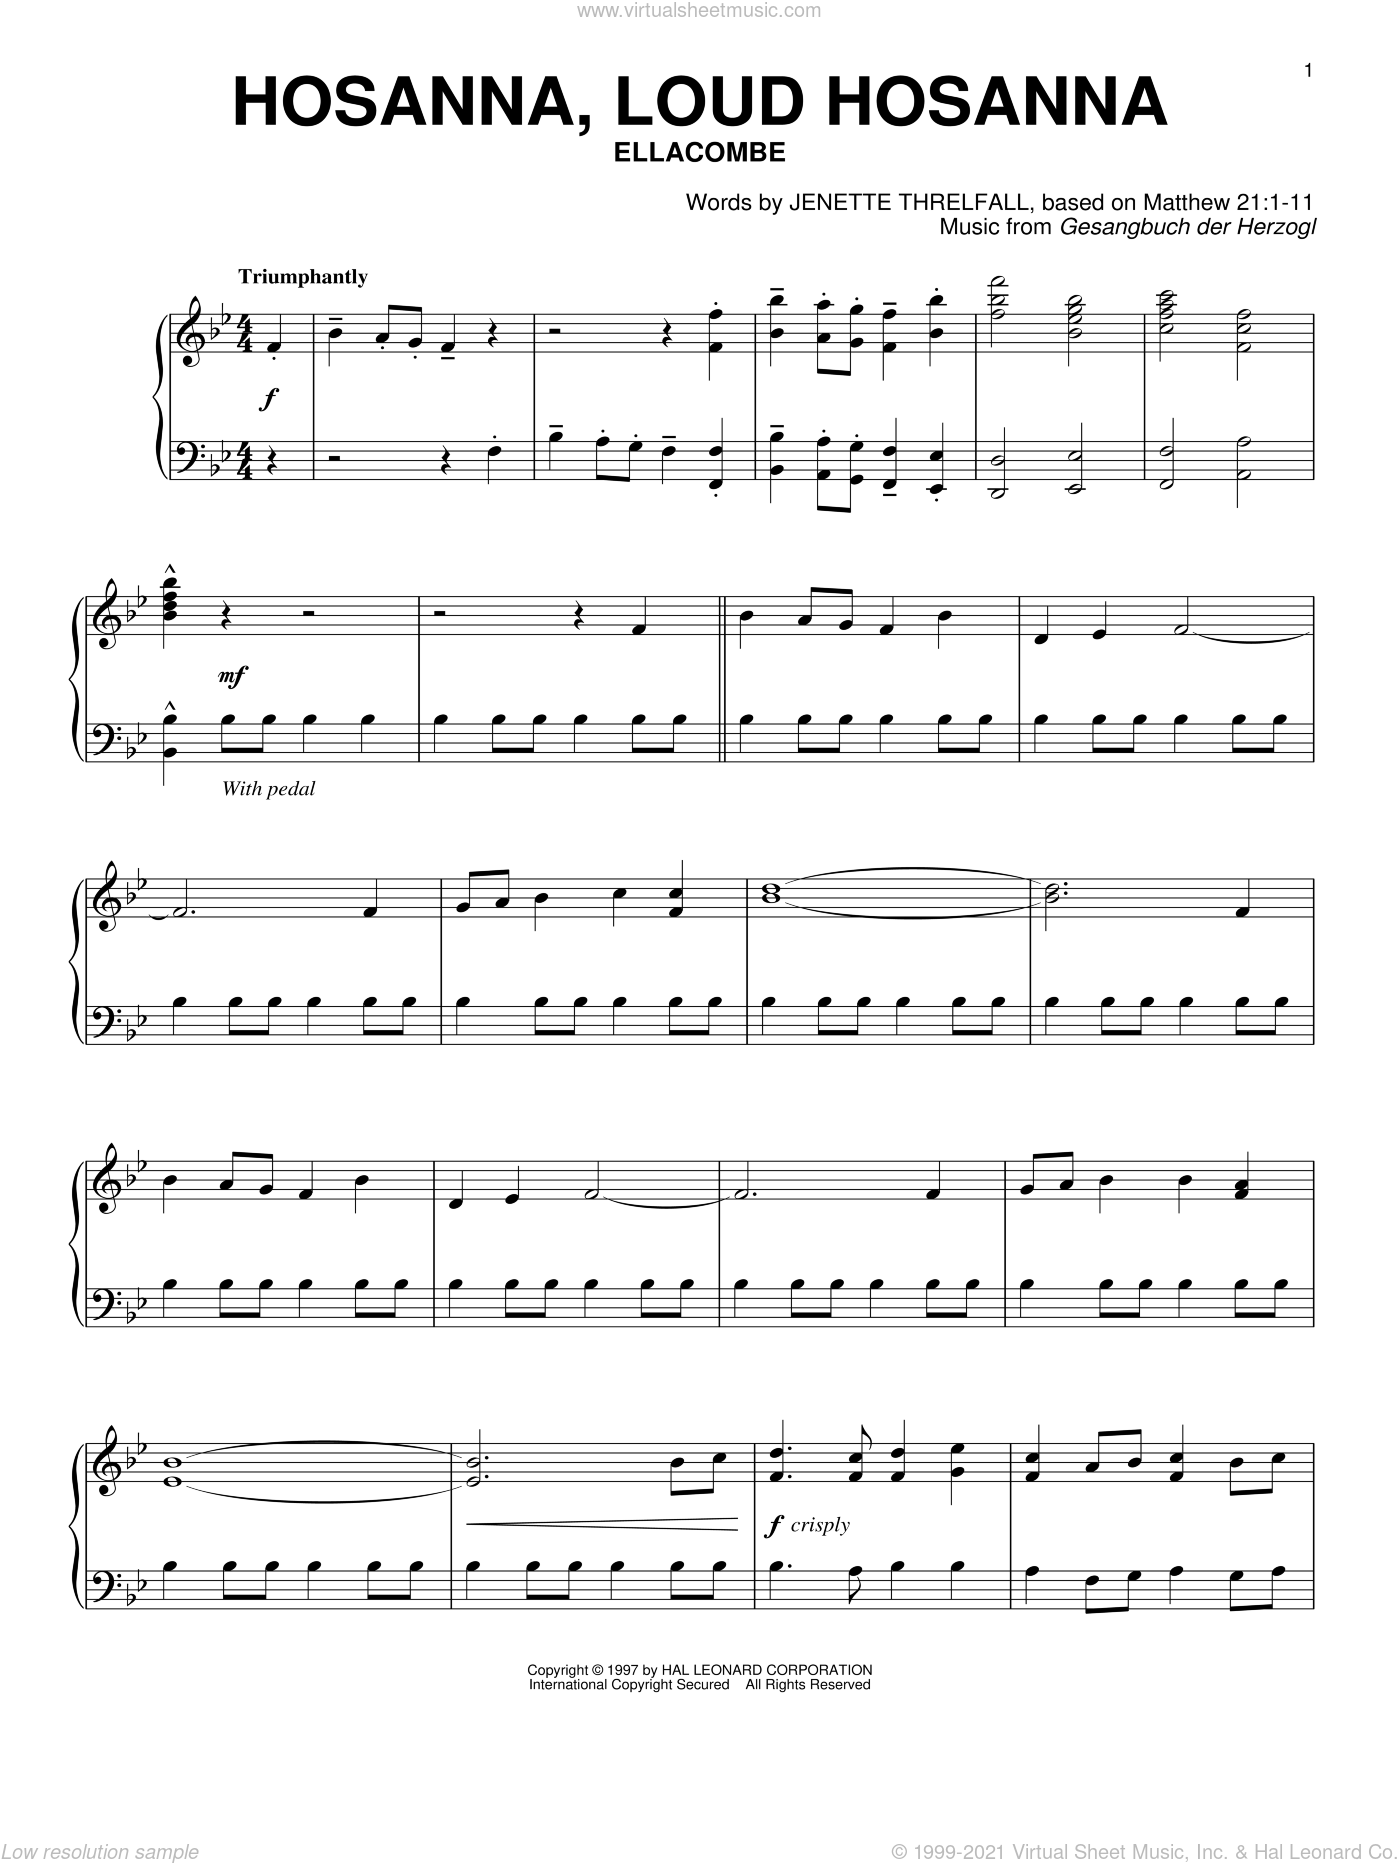 Hosanna, Loud Hosanna sheet music for piano solo by Gesangbuch der Herzogl and Jennette Threlfall, intermediate skill level